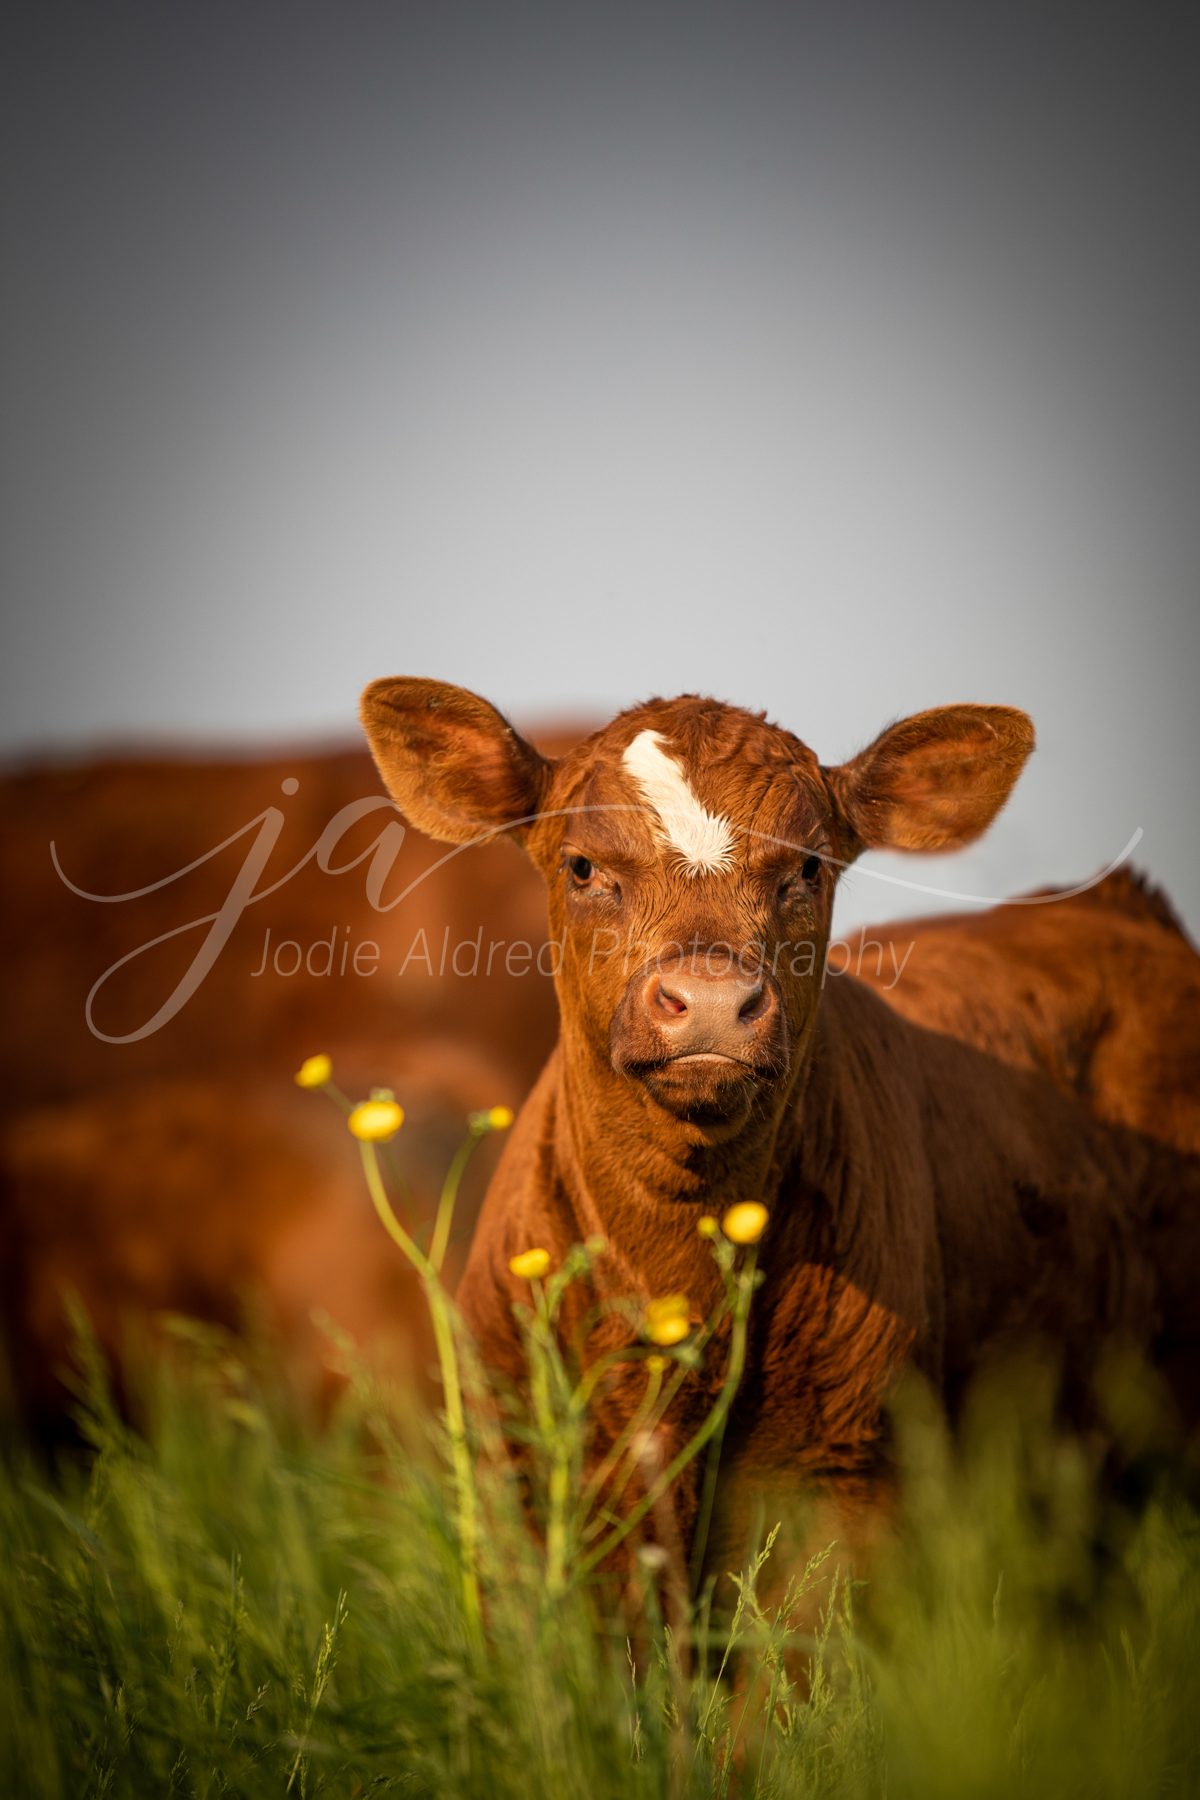 agricultural-photographer-jodie-aldred-ontario-elgin-chatham-huron-lambton-london-middlesex-farm-calf-cattle-angus-beef-pasture.jpg